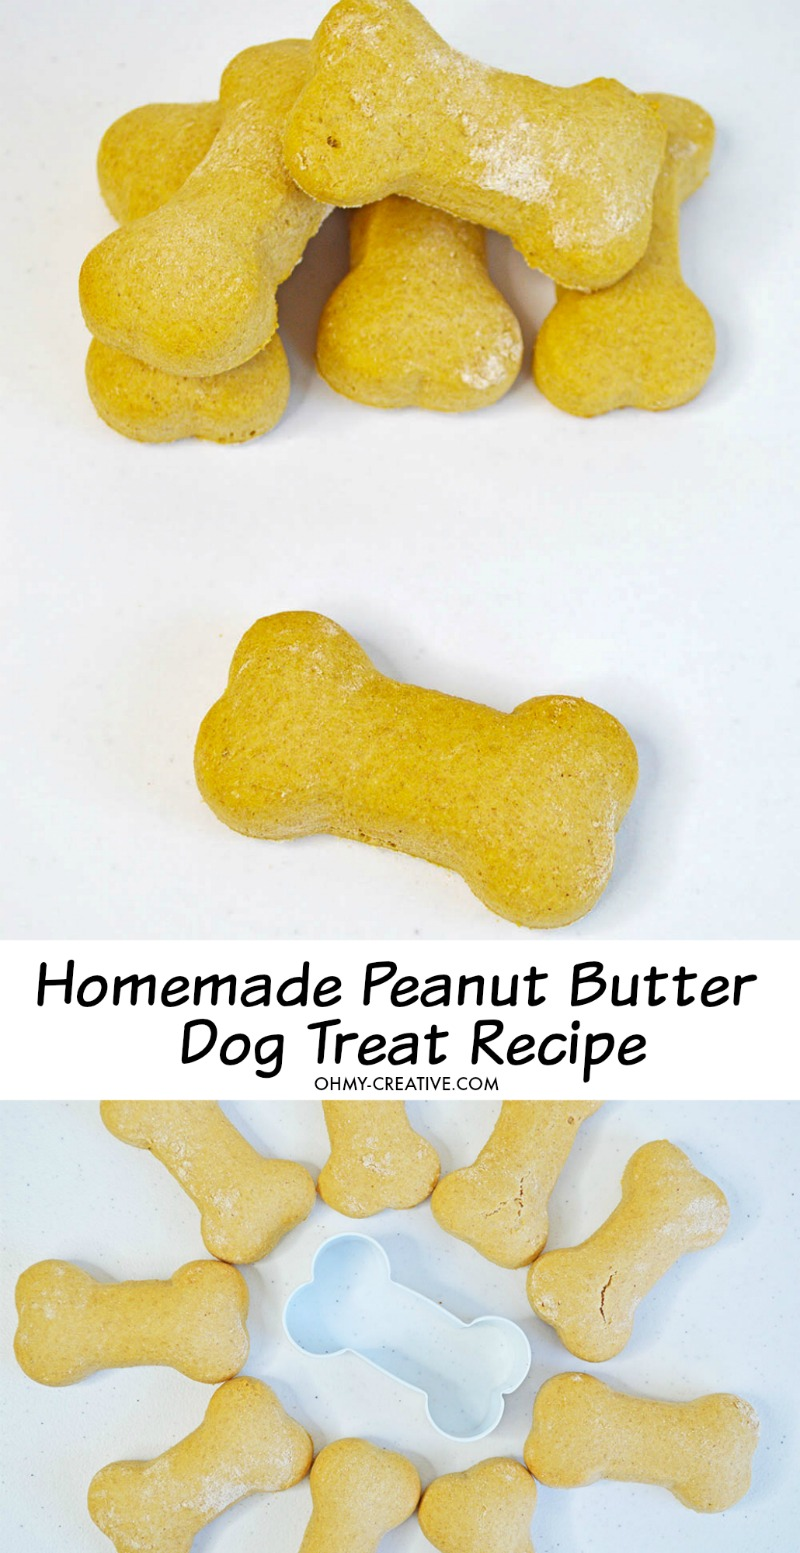 Make our delicious Peanut Butter Dog Treats Recipe as a homemade healthy treat that your dogs will love! OHMY-CREATIVE.COM #dogtreats #dogtreatsrecipe #homemadedogtreats #peanutbutterdogtreats #easydogtreatsrecipe